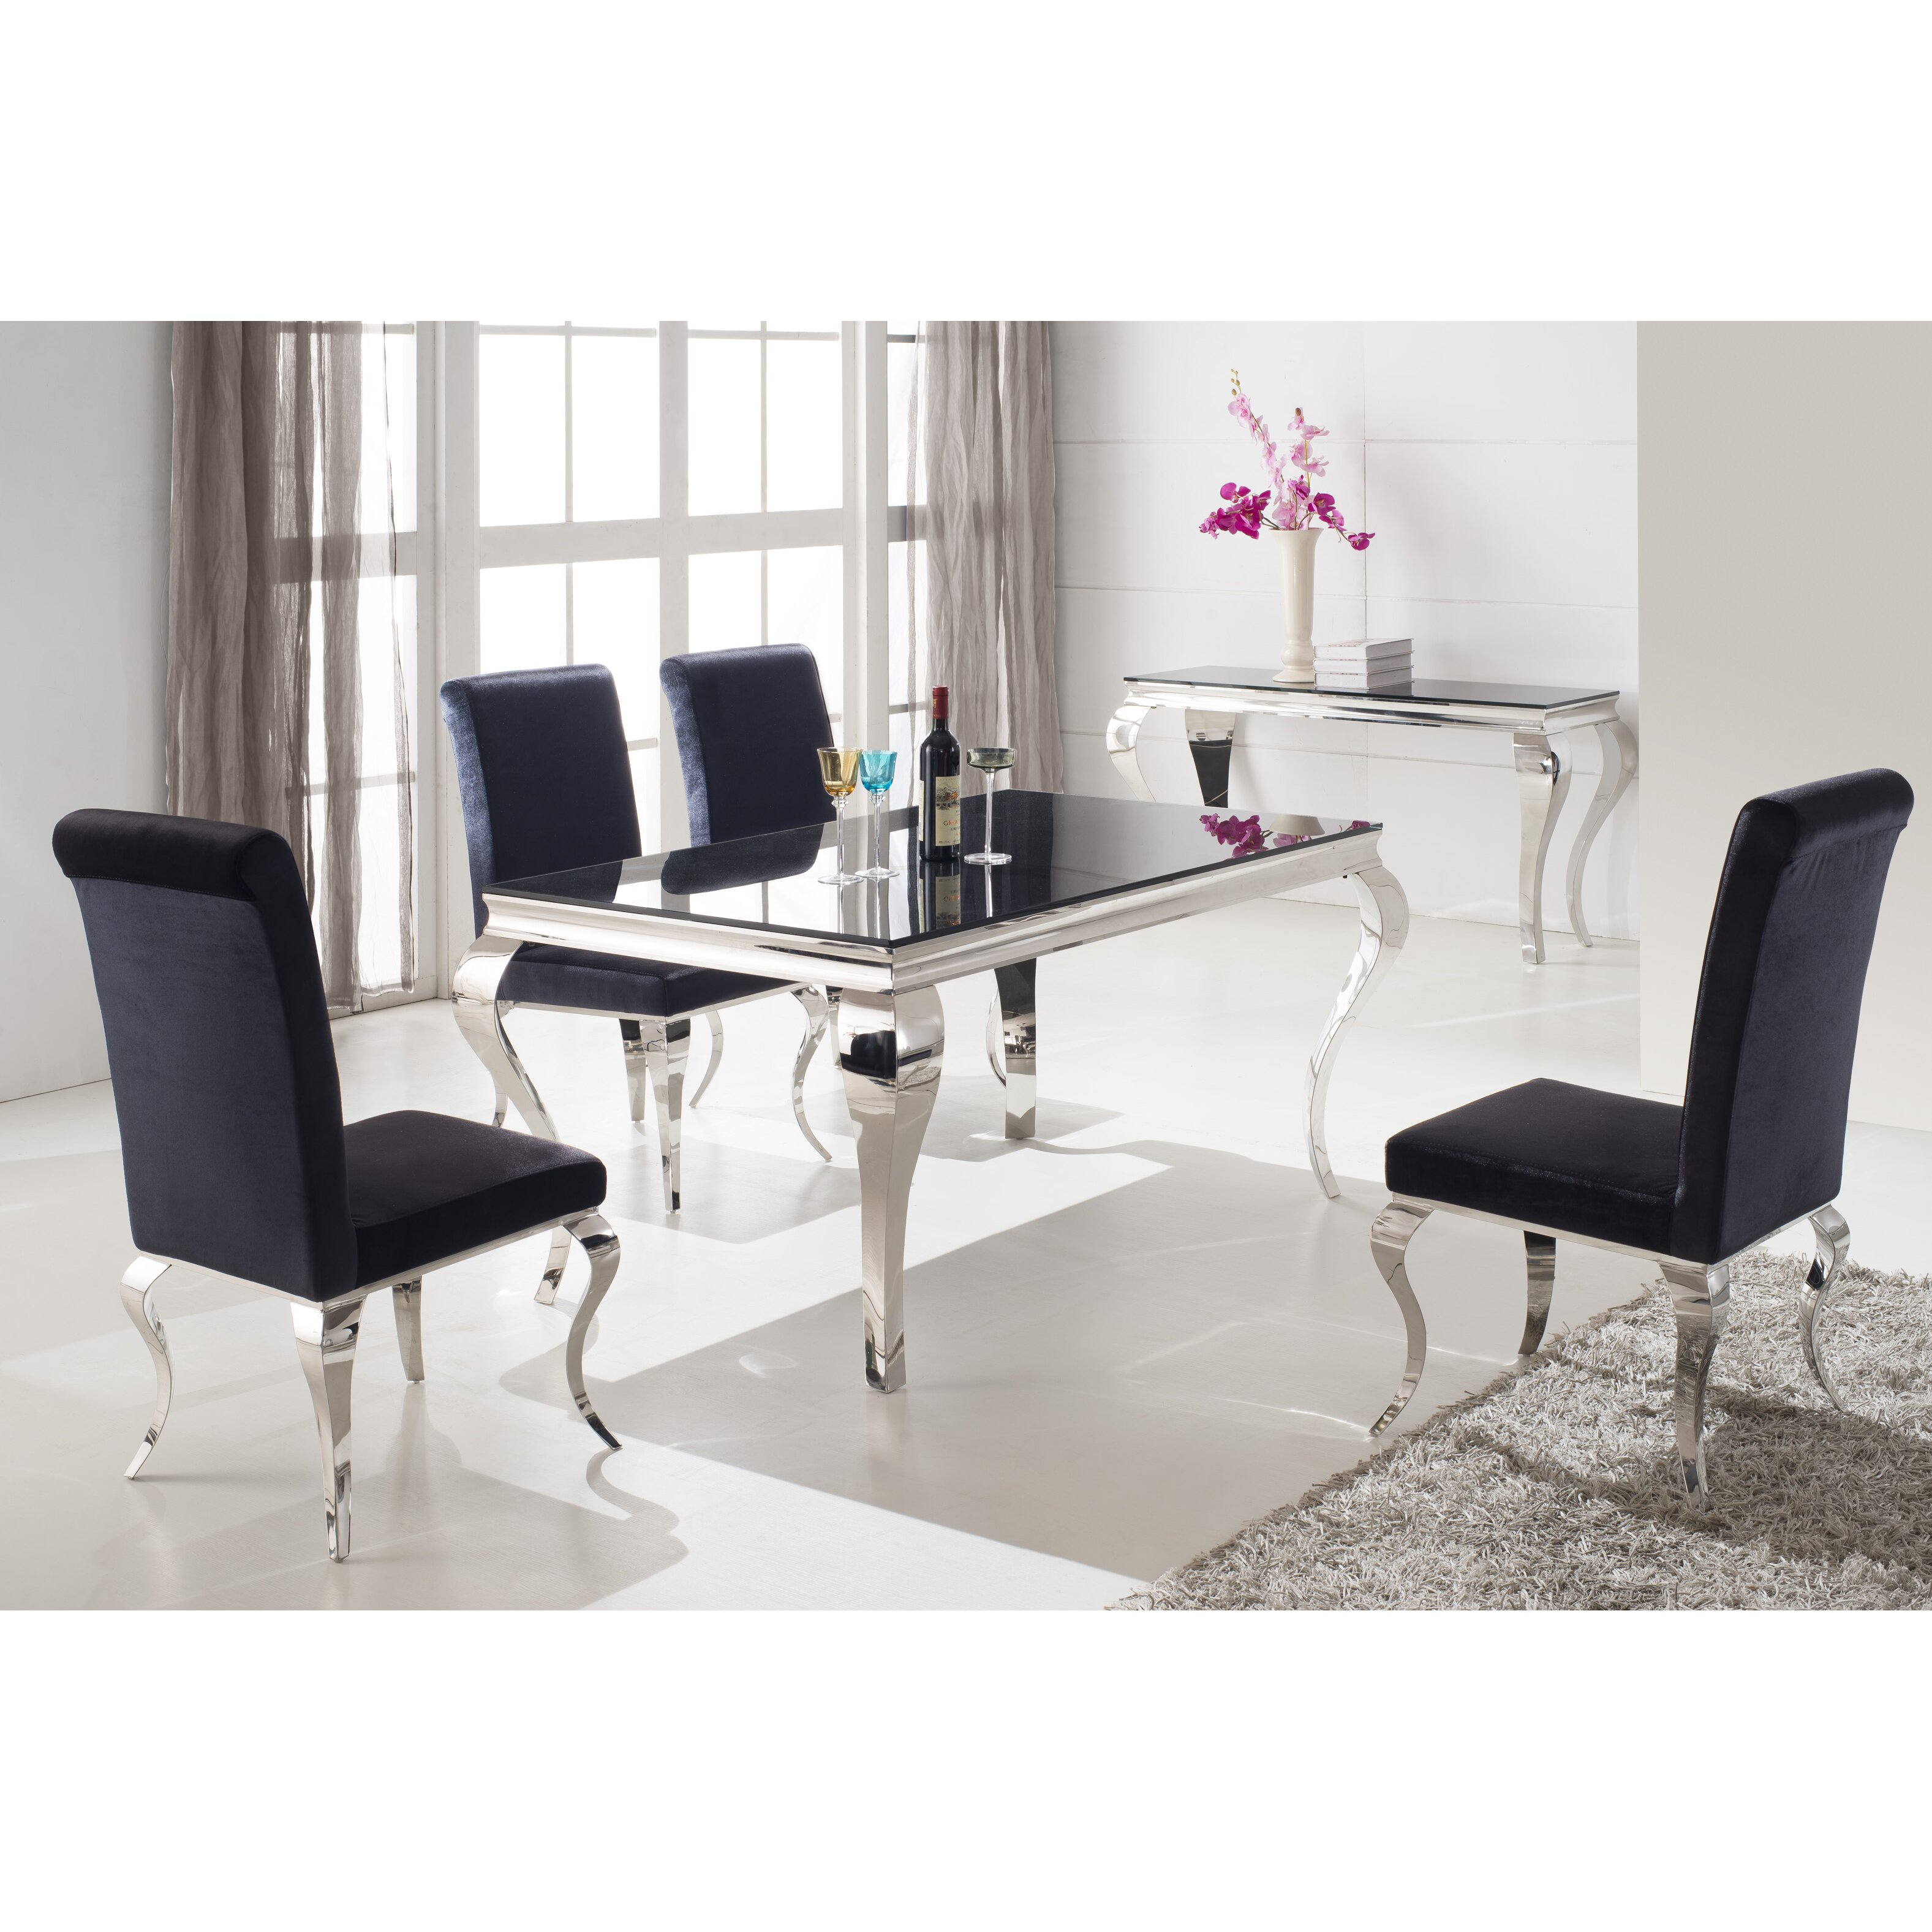 Wilkinson furniture louis dining table reviews wayfair uk